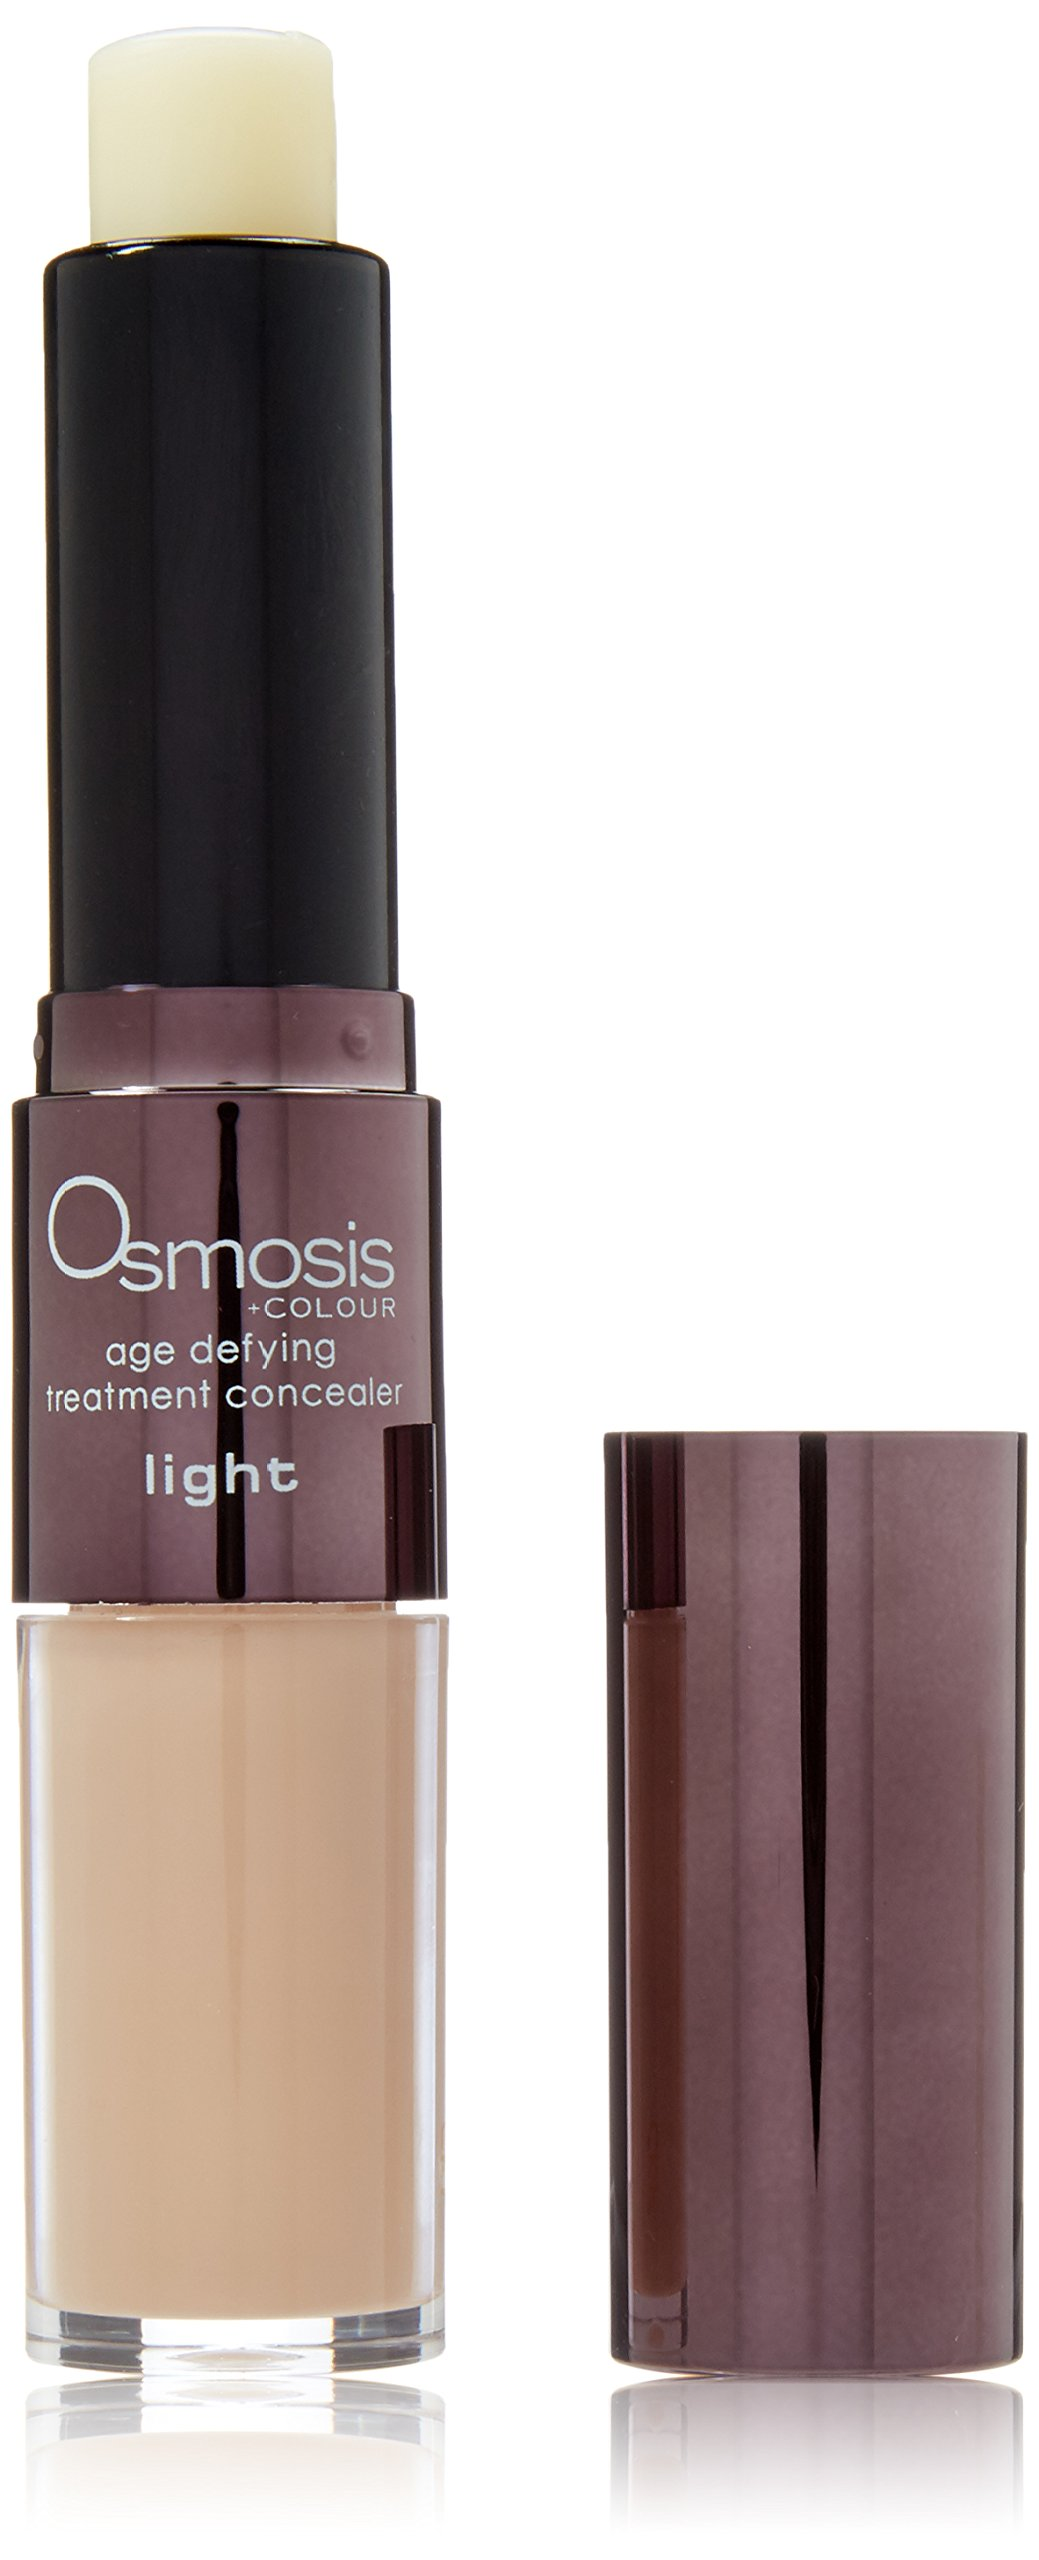 Osmosis Skincare Age Defying Treatment Concealer Stick